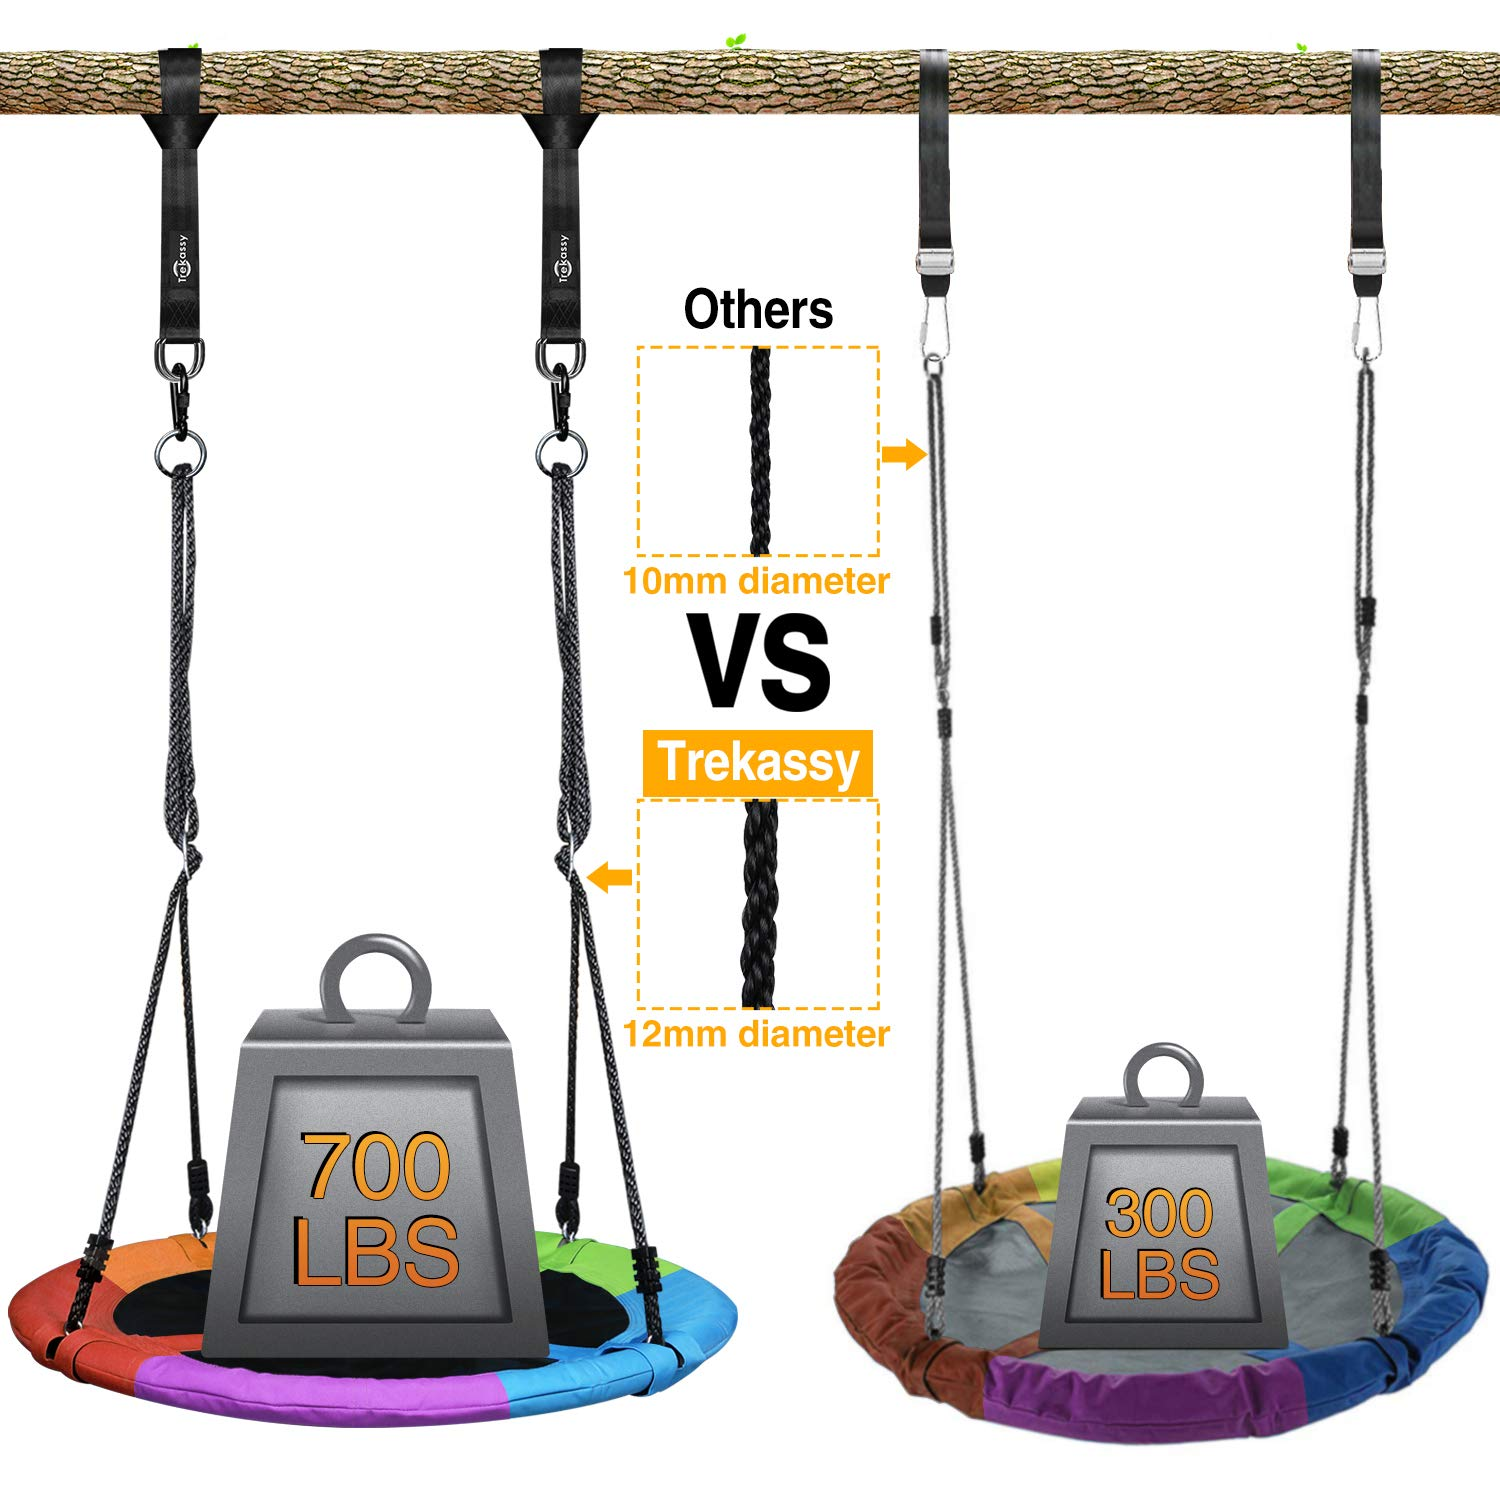 Trekassy 700 lb Saucer Tree Swing for Kids Adults 40 Inch 900D Oxford Waterproof Frame with 2 Hanging Straps - Rainbow by Trekassy (Image #5)